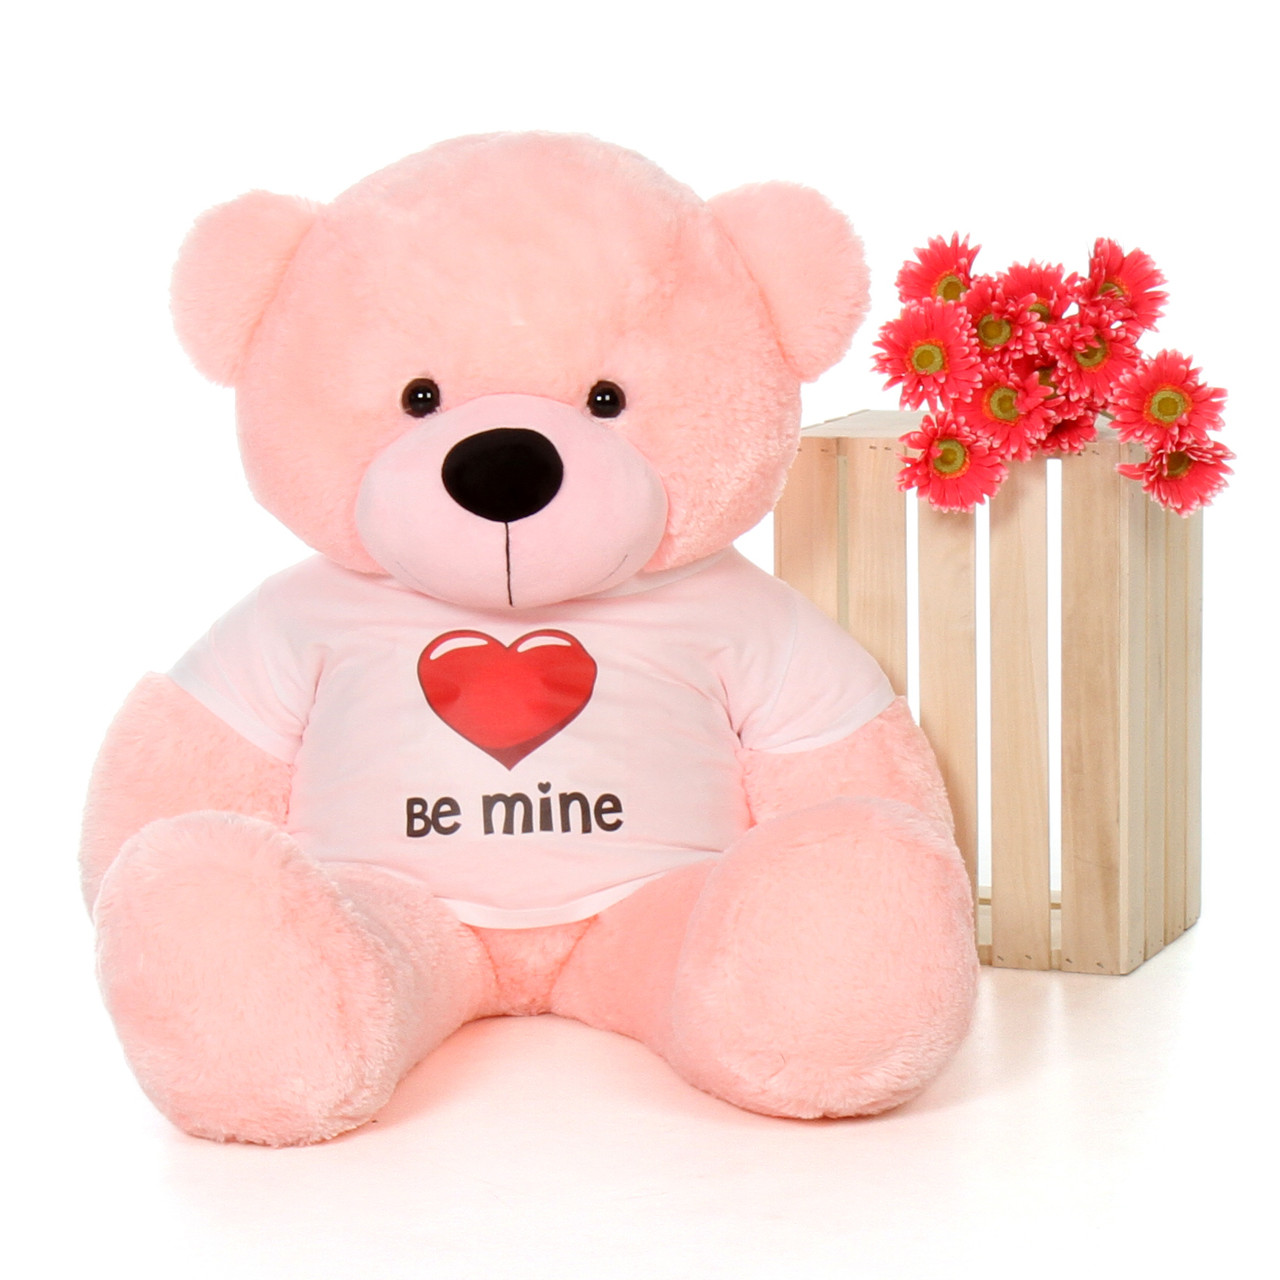 4ft life size valentines day teddy bear wearing be mine shirt choose your favorite fur color - Giant Teddy Bears For Valentines Day